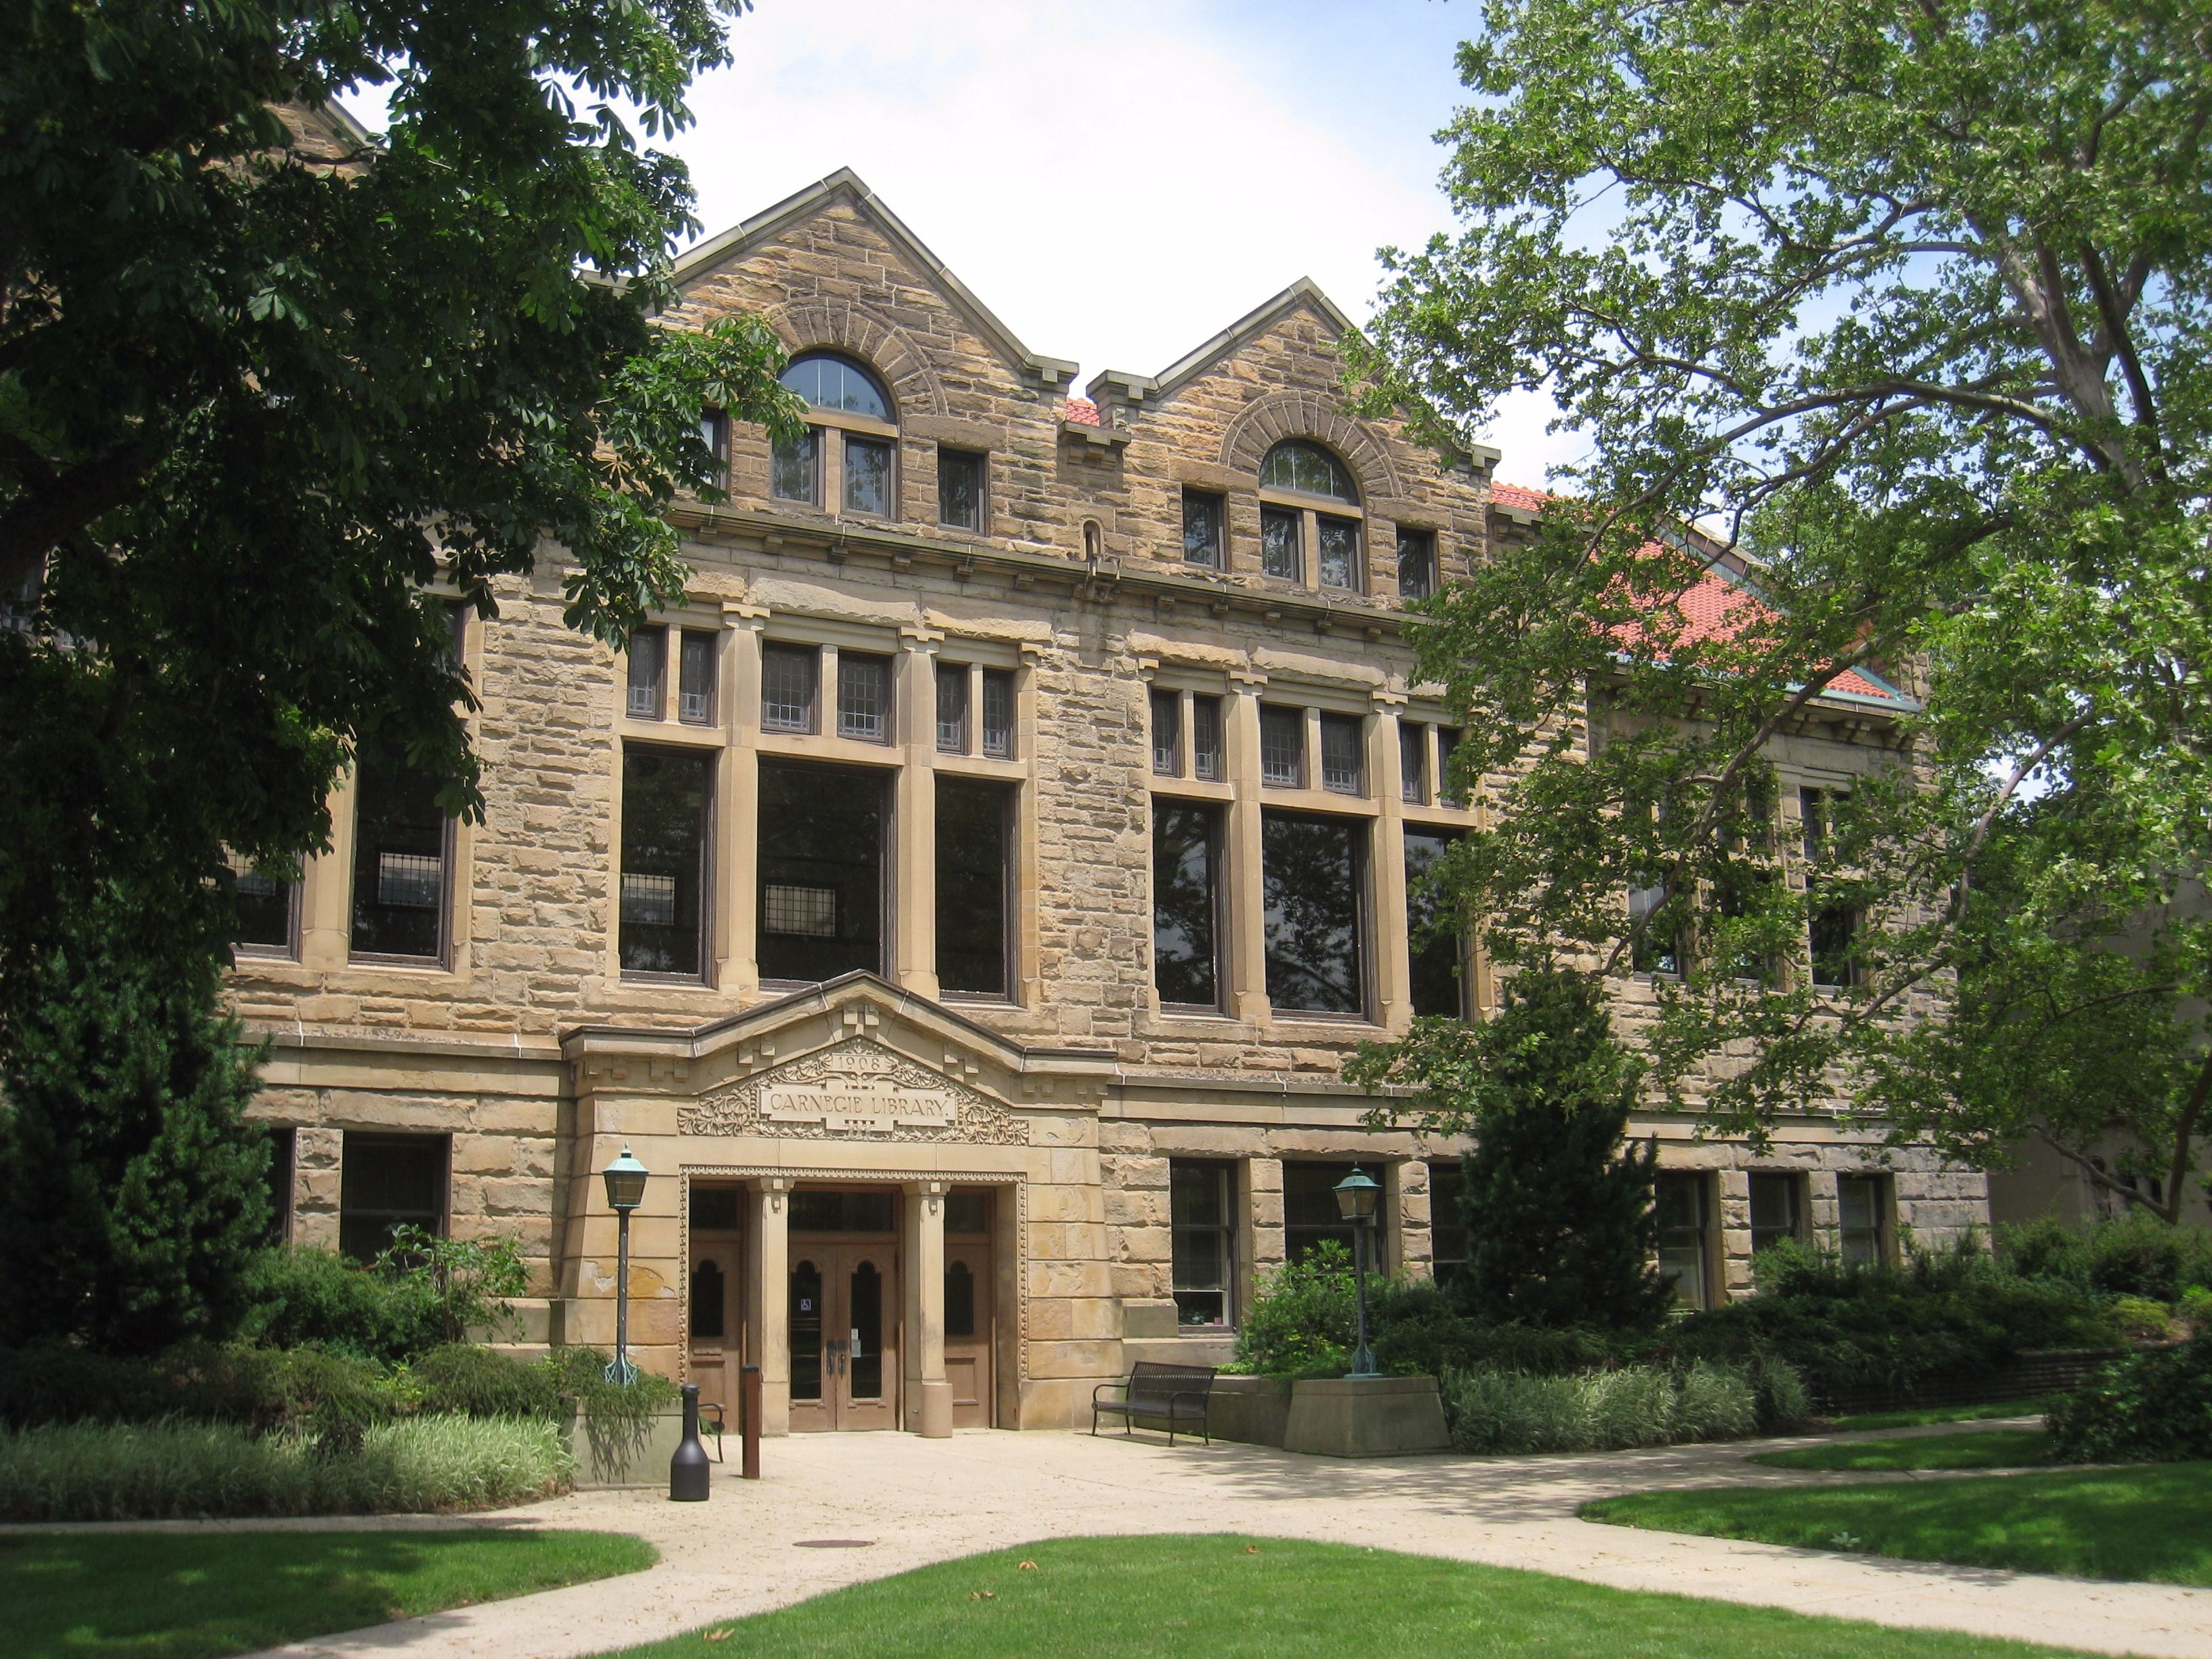 The Carnegie Building at Oberlin College